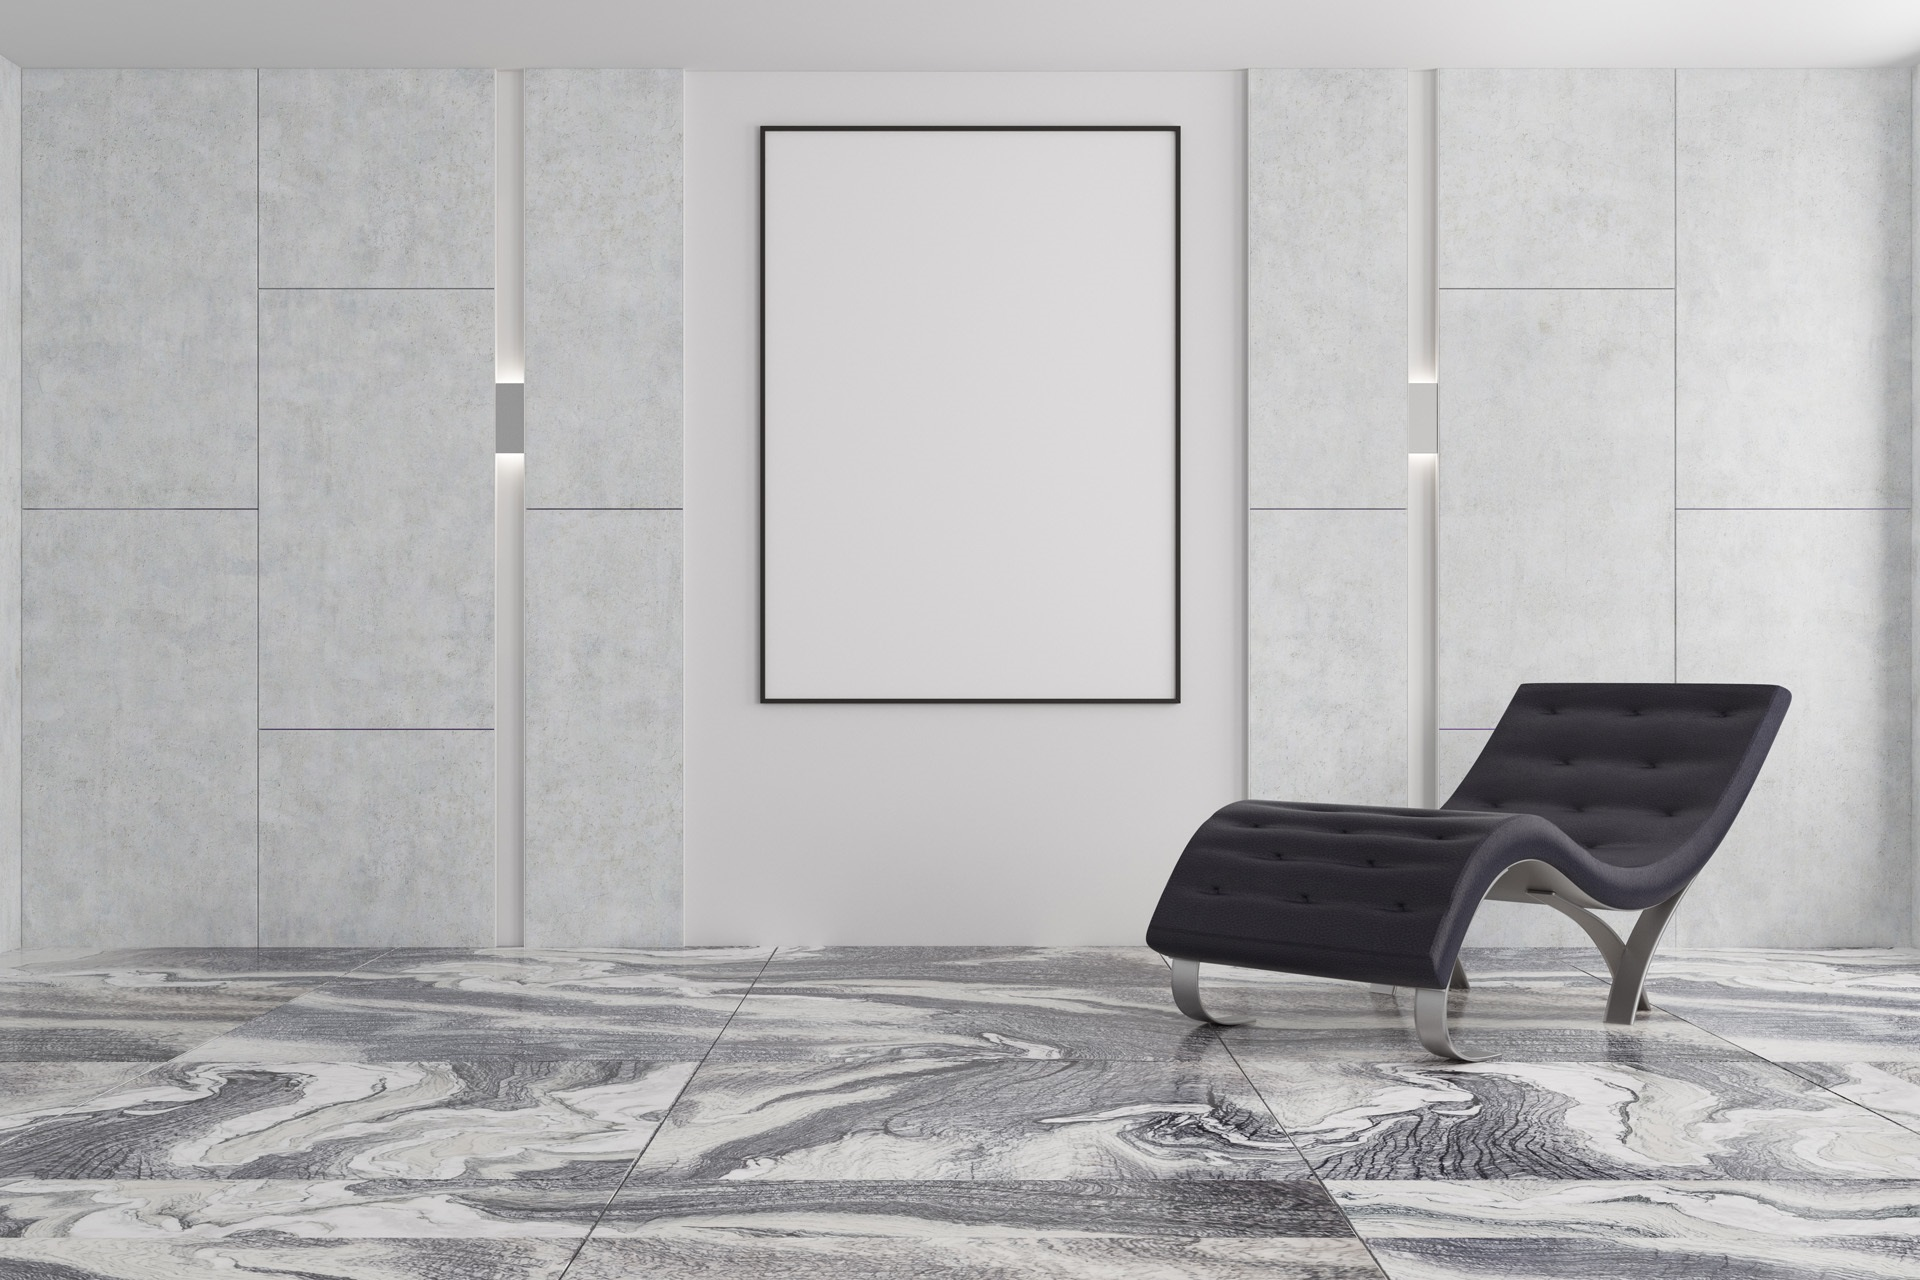 Minimalistic Living Room Interior With A Gray Marble Floor, Gray